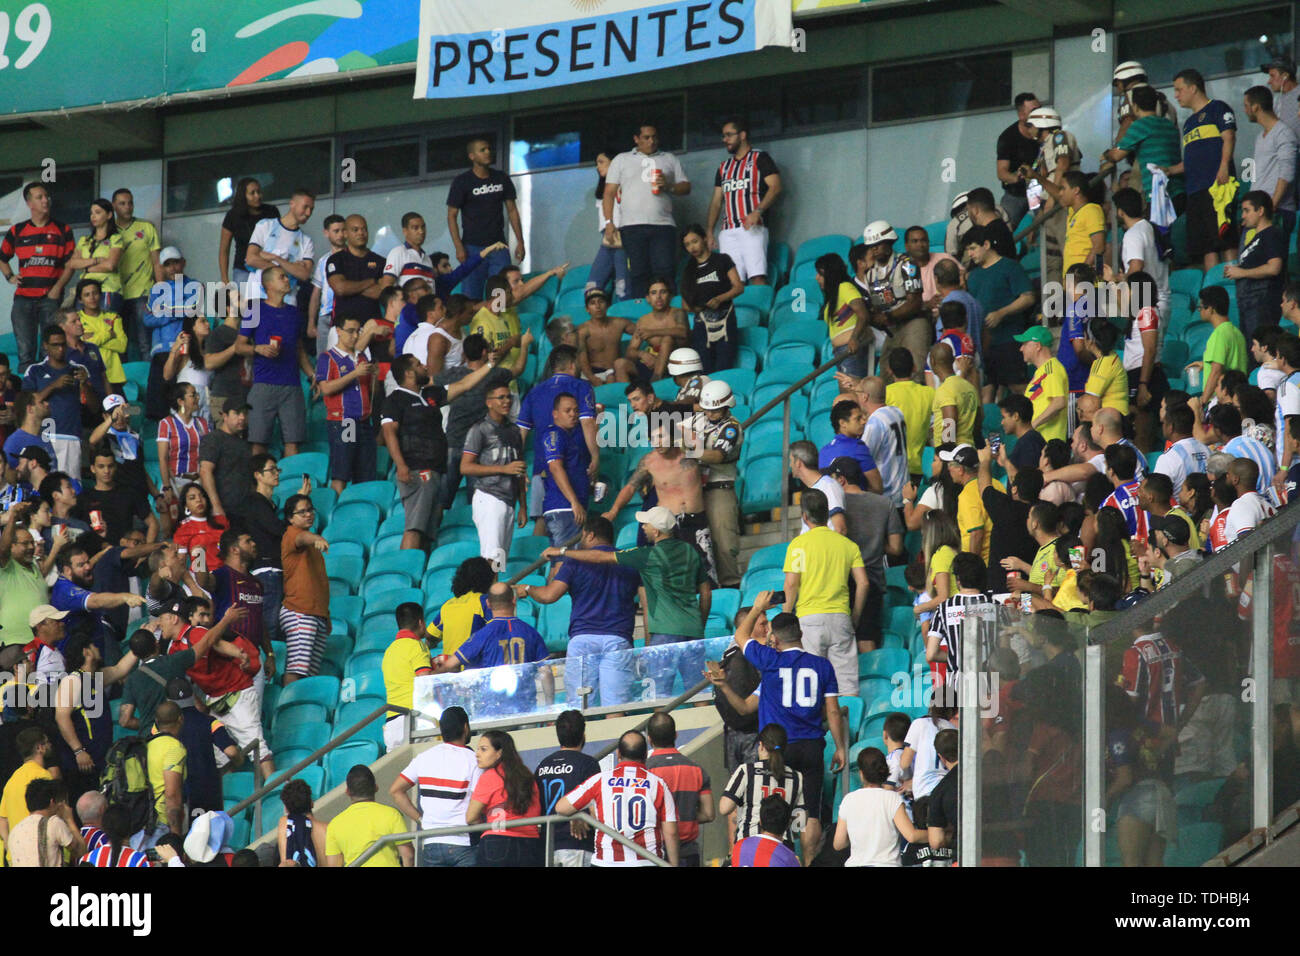 Salvador, Brazil. 15th June, 2019. Confusion in the stands during match between Argentina and Colombia, game 03, valid for the group stage of the Copa America 2019, held this Saturday, 15th, at the Fonte Nova Arena in Salvador, BA. Credit: Mauro Akiin Nassor/FotoArena/Alamy Live News - Stock Image